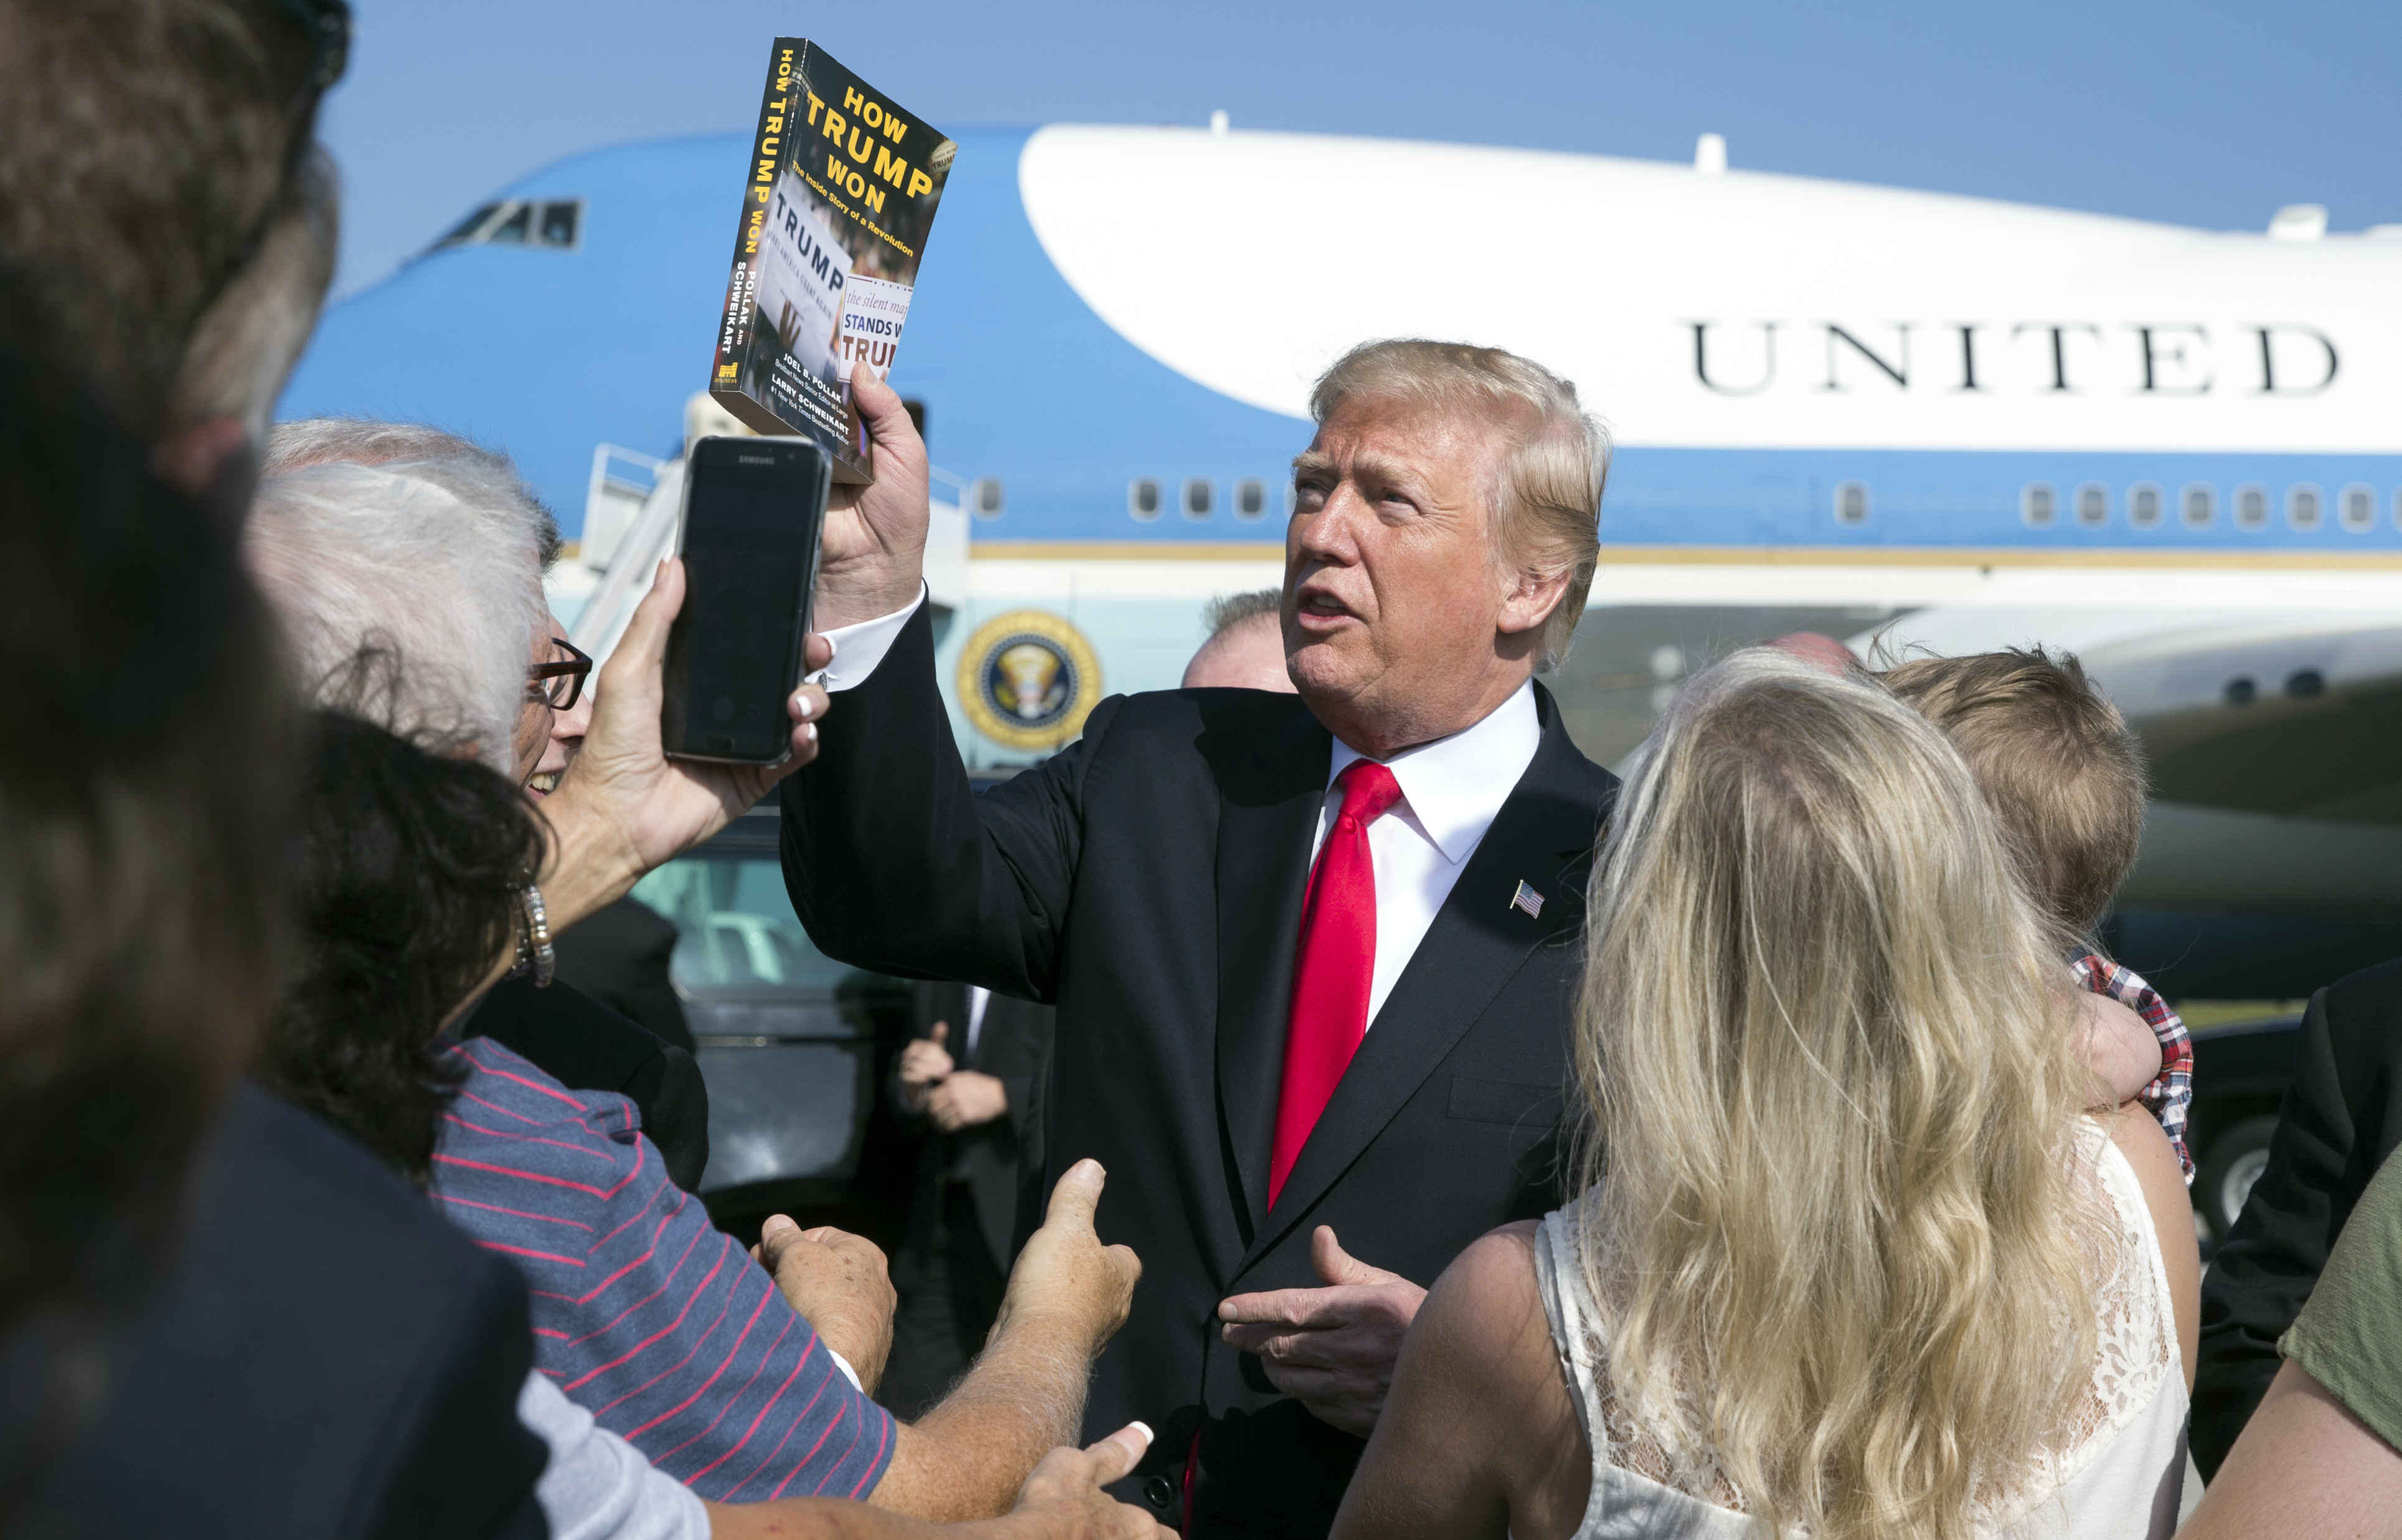 """President Donald Trump holds up the book """"How Trump Won The Inside Story of a Revolution"""" as he greets people on the tarmac as he arrives on Air Force One at Palm Beach International Airport, in West Palm Beach, Fla., Friday, Dec. 22, 2017. (Carolyn Kaster/AP)"""